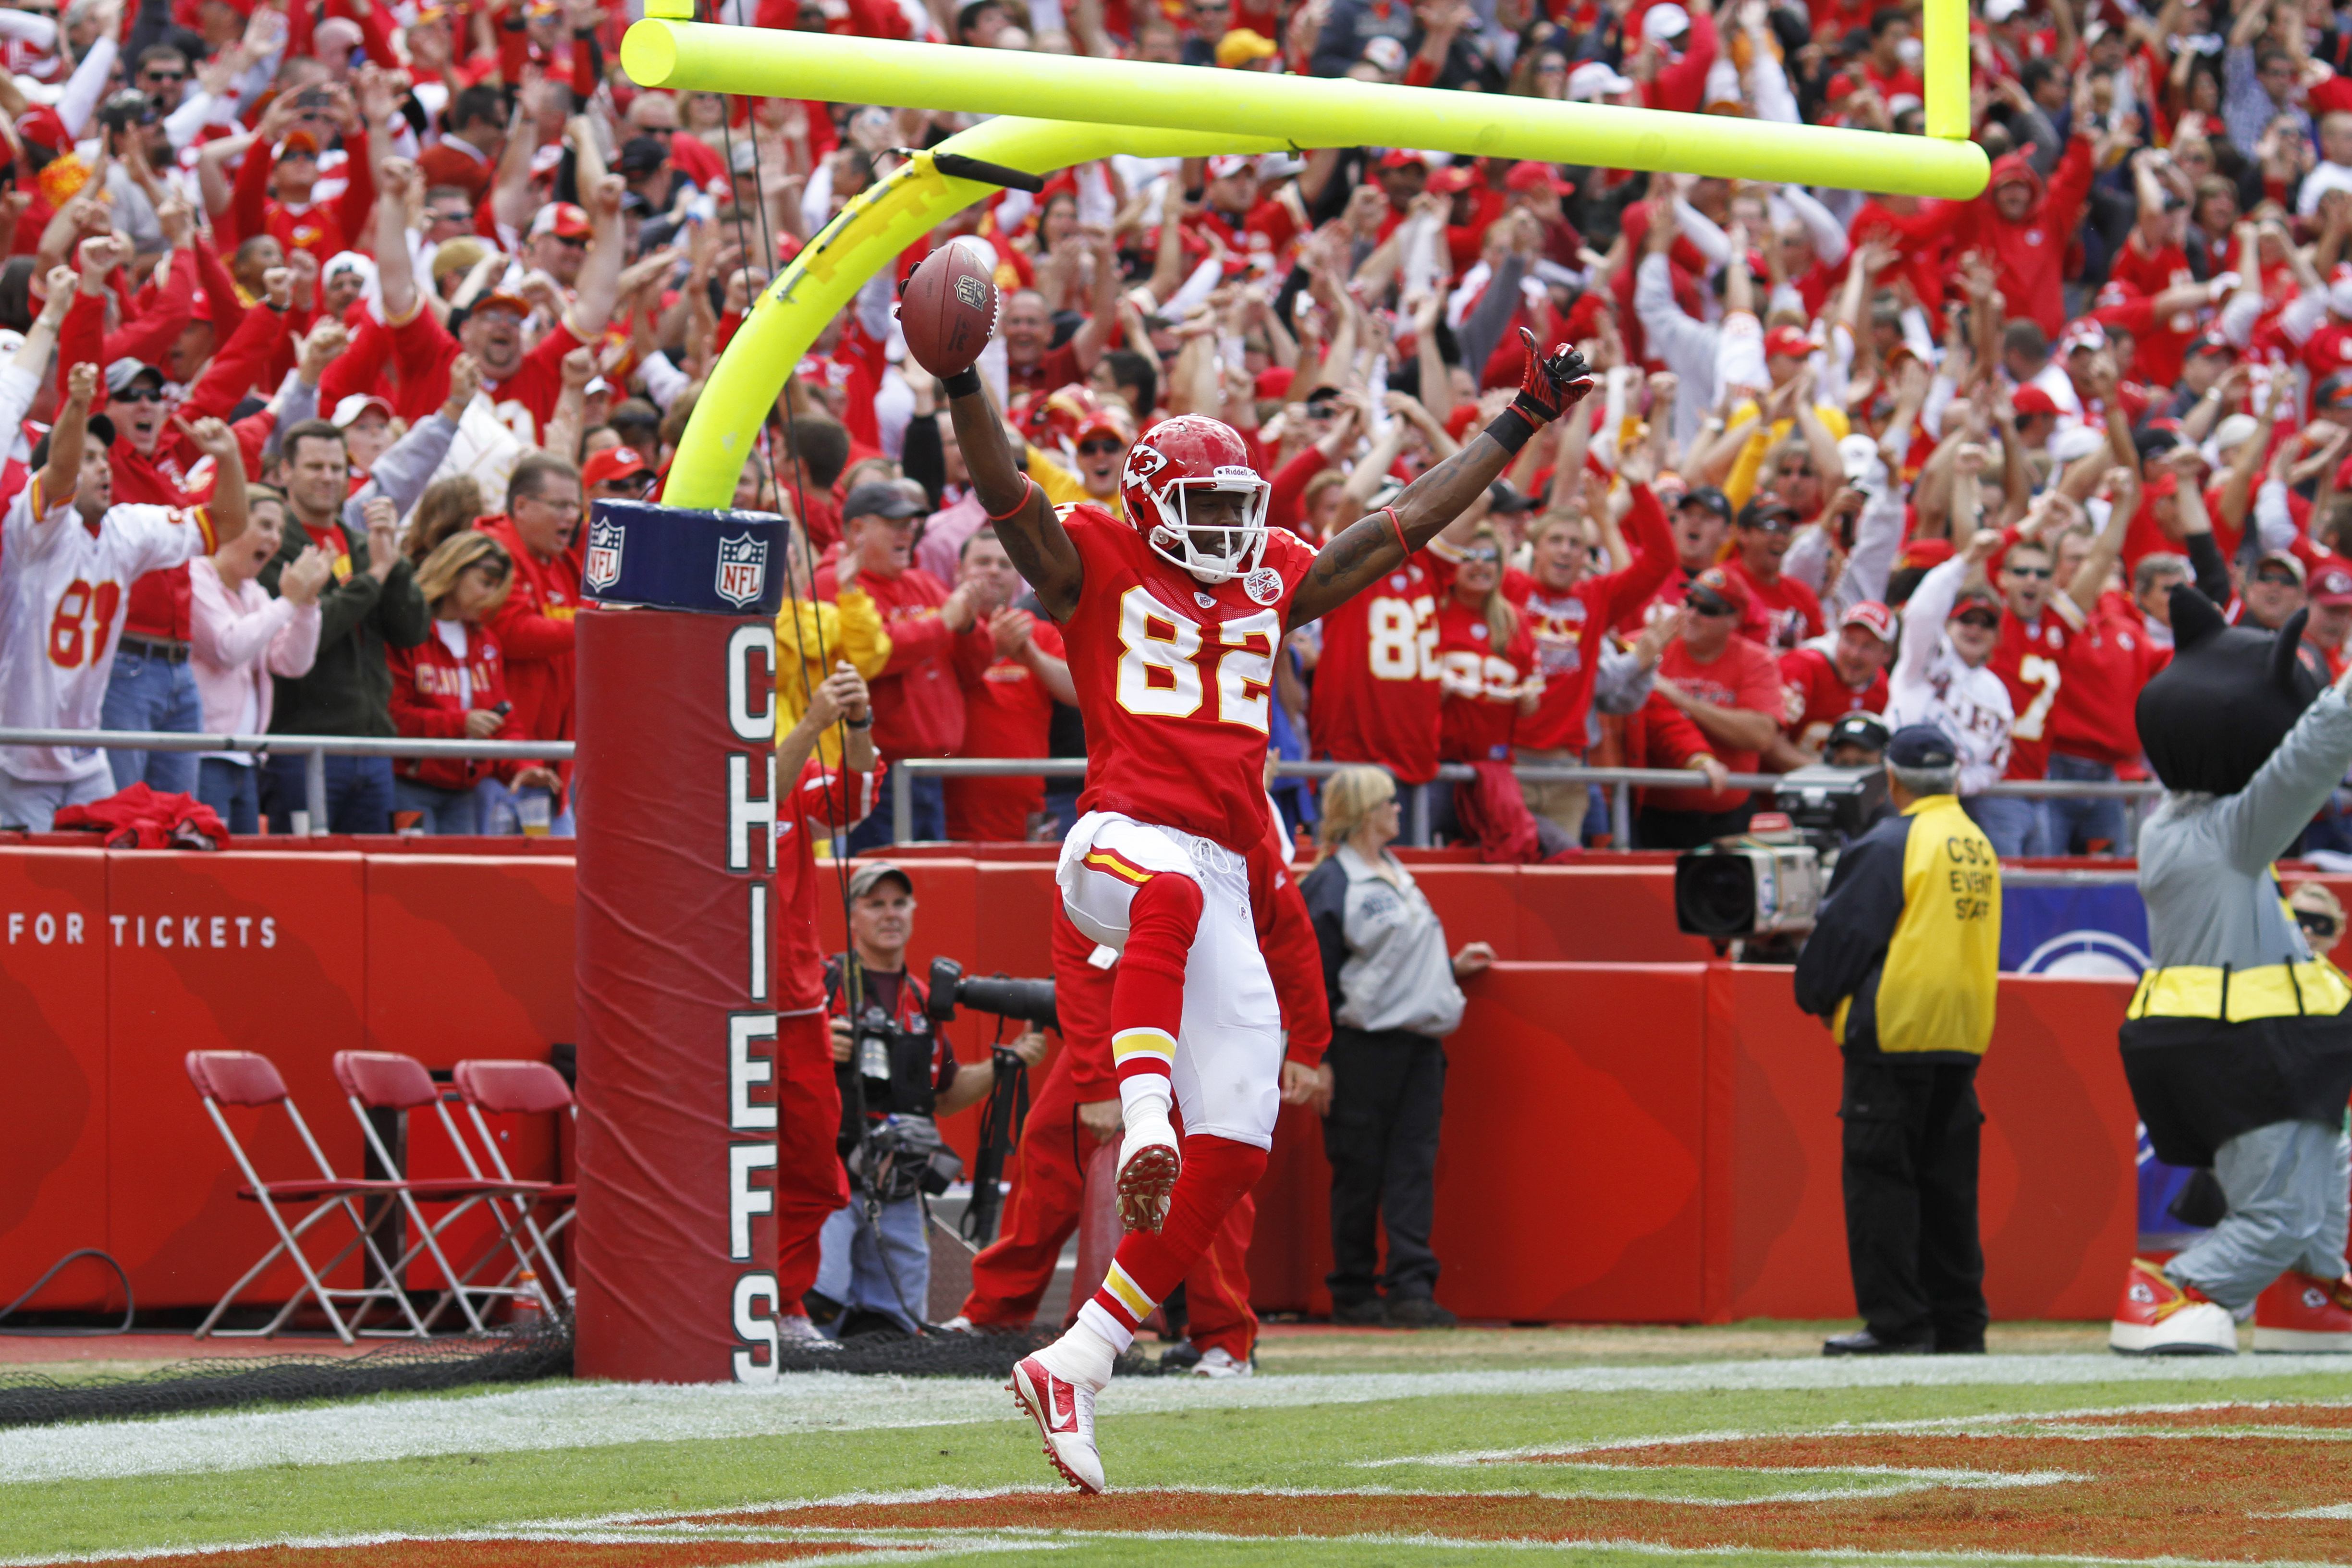 The Chiefs should do some more celebrating with a win over the Texans